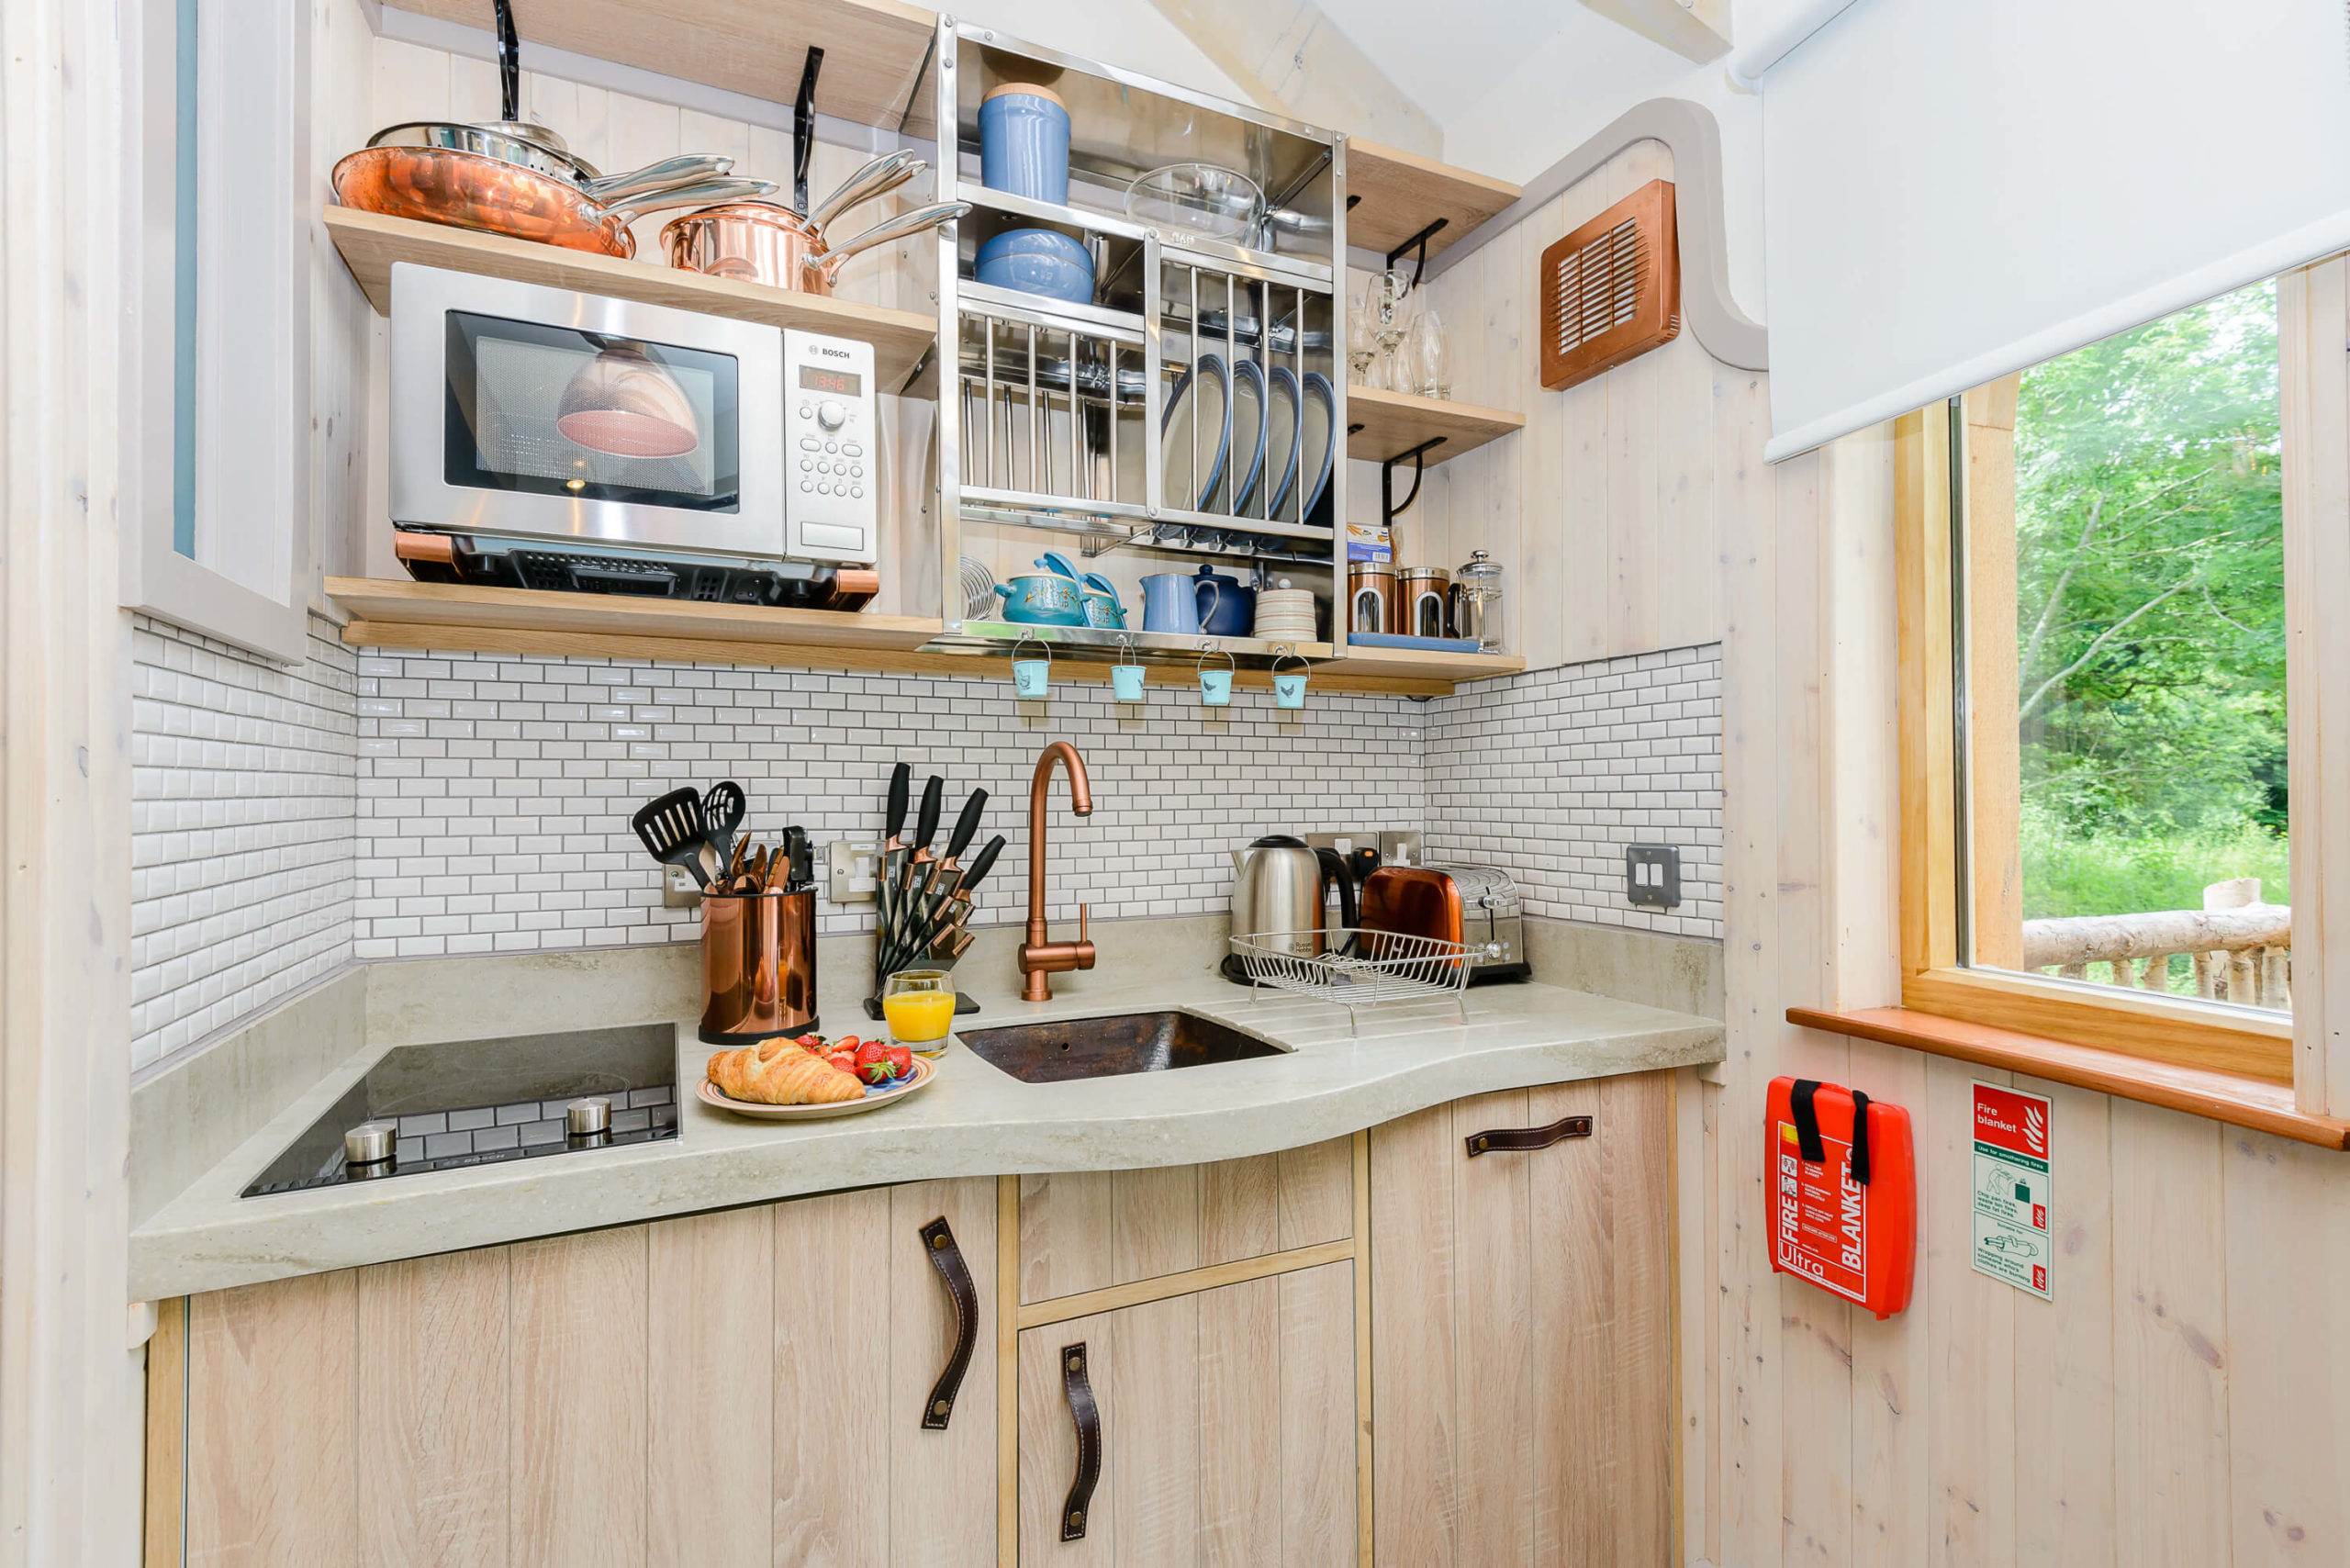 kitchenette, sink, microwave and copper finishing at the treehouse